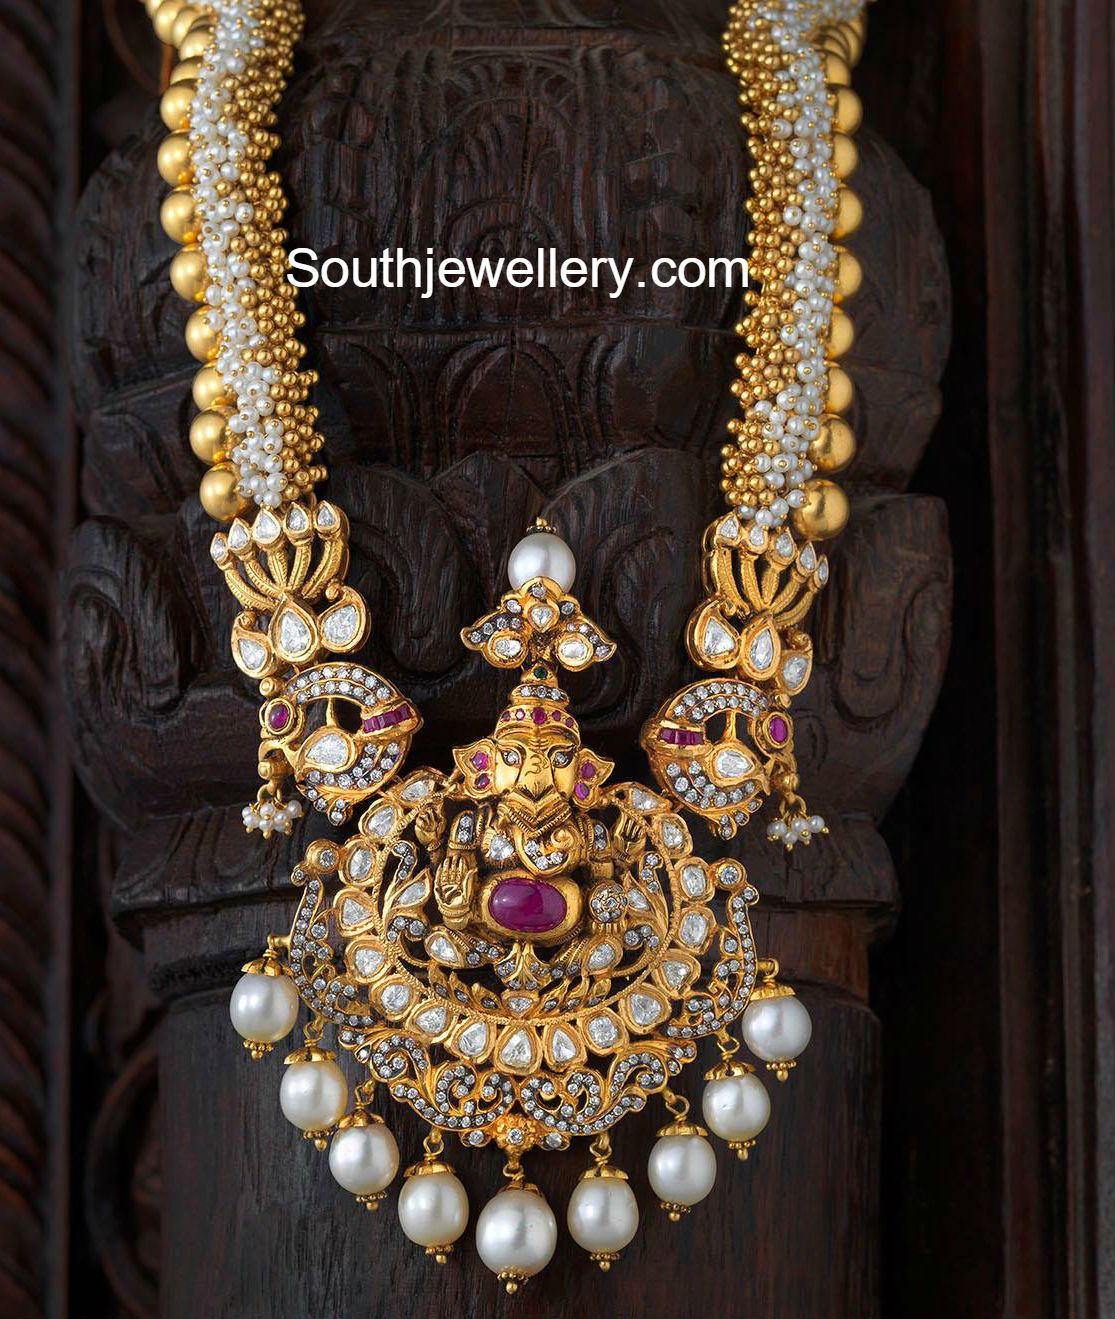 Antique necklace with ganesh pendant jewellery designs antique necklace with ganesh pendant aloadofball Gallery